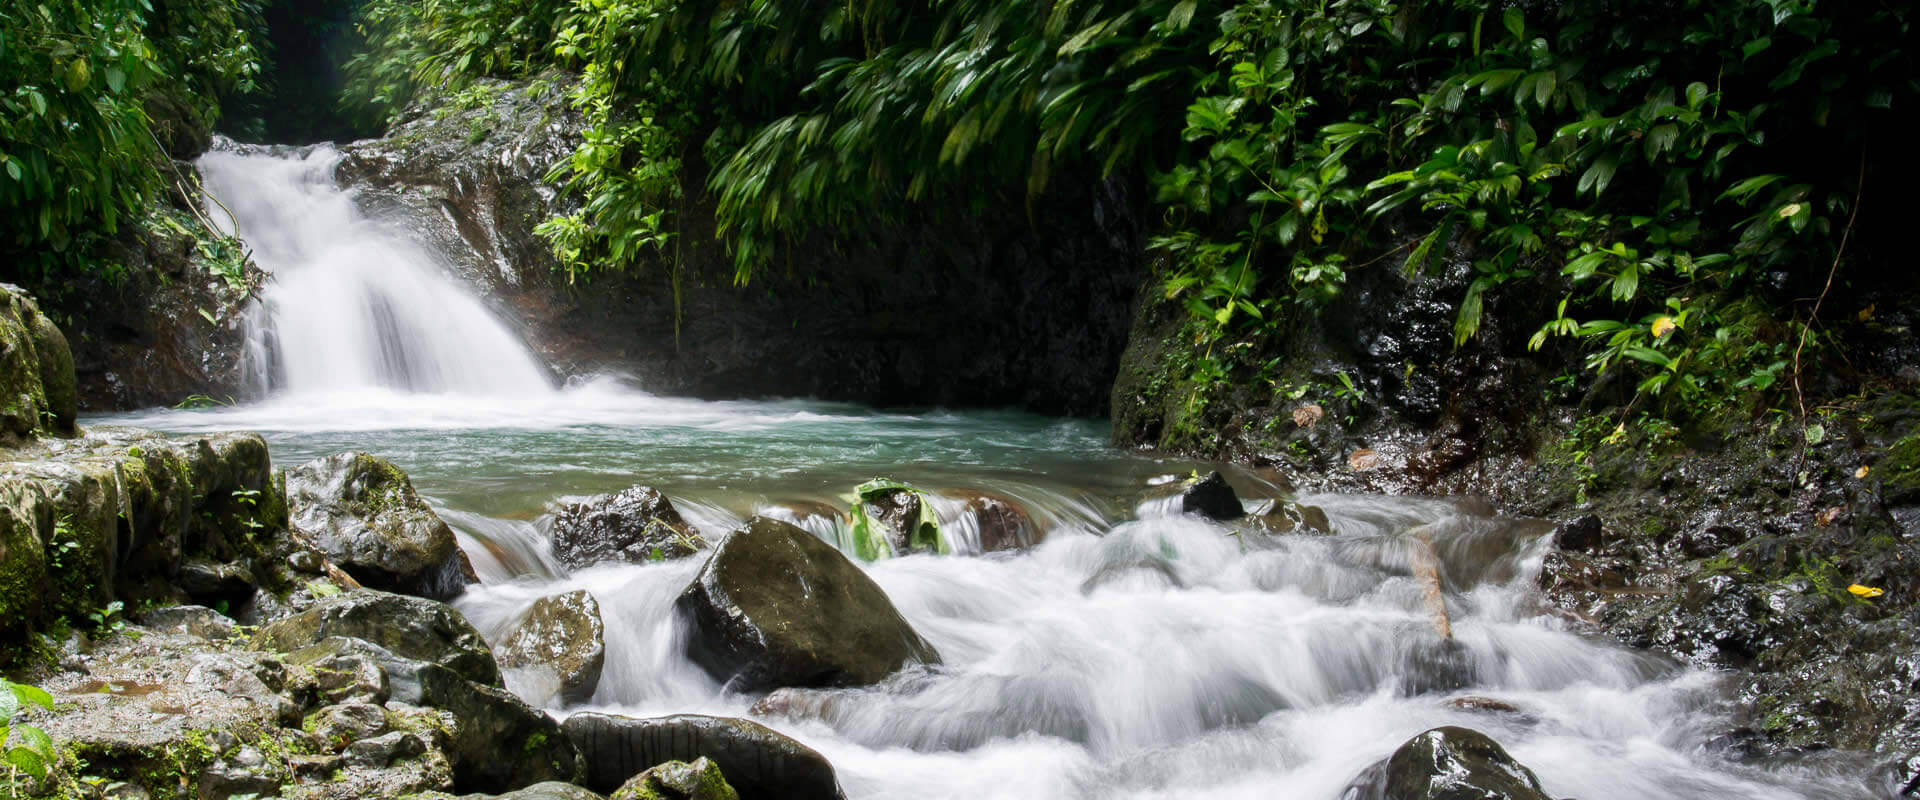 Rainmaker Park Tour | Costa Rica Jade Tours